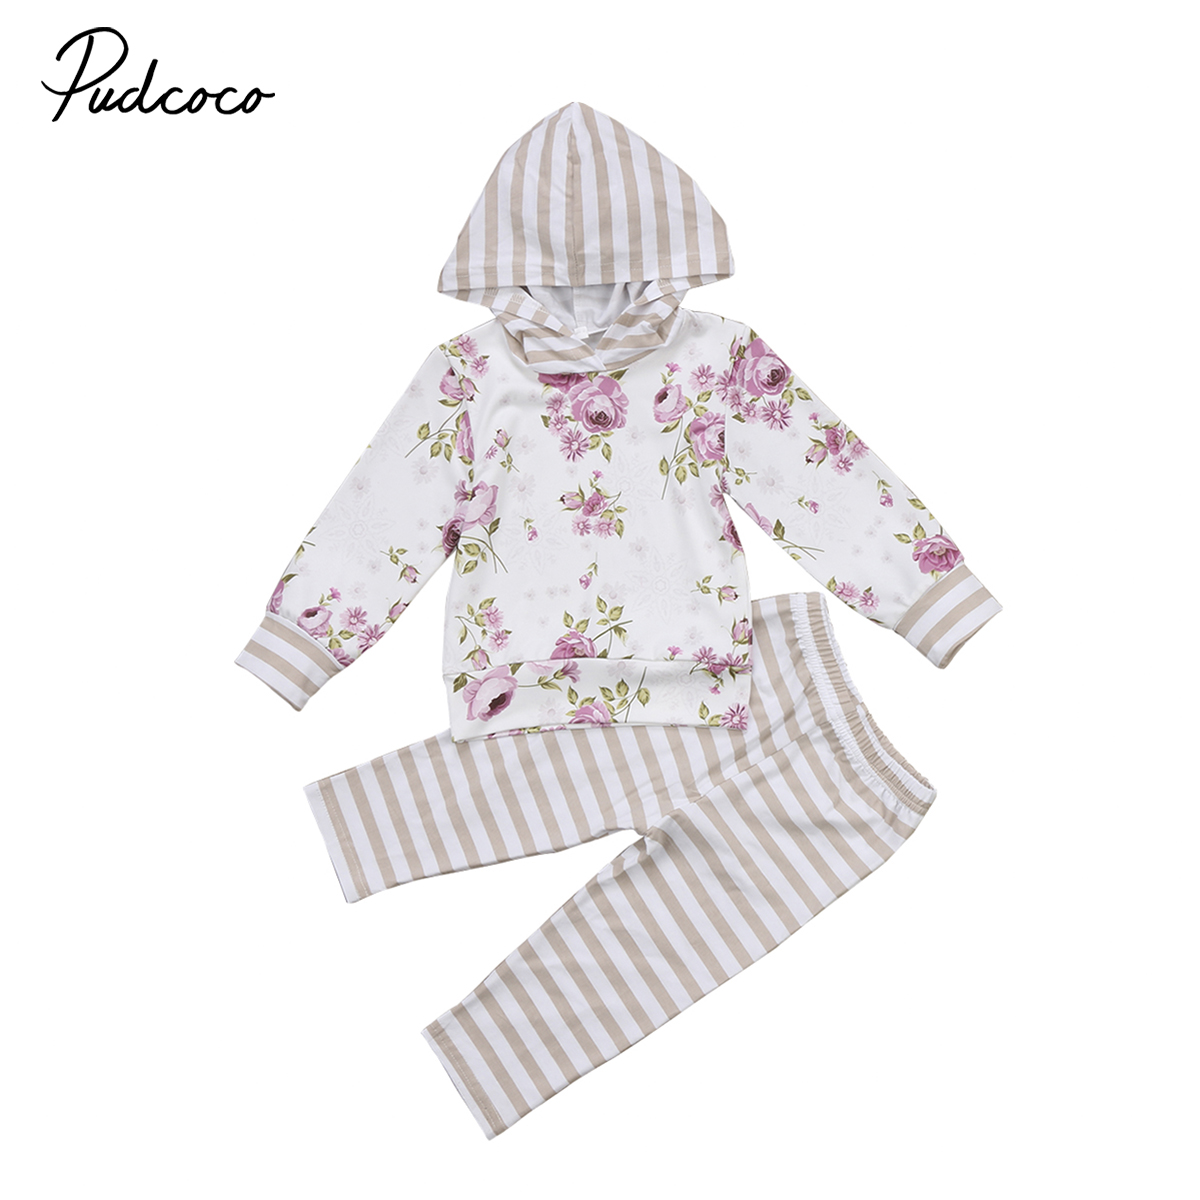 baby girls floral clothing Baby Girls Autumn Hoodies Outfits Clothes long sleeves T shirt+ striped Pants 2pcs Set Tracksuit